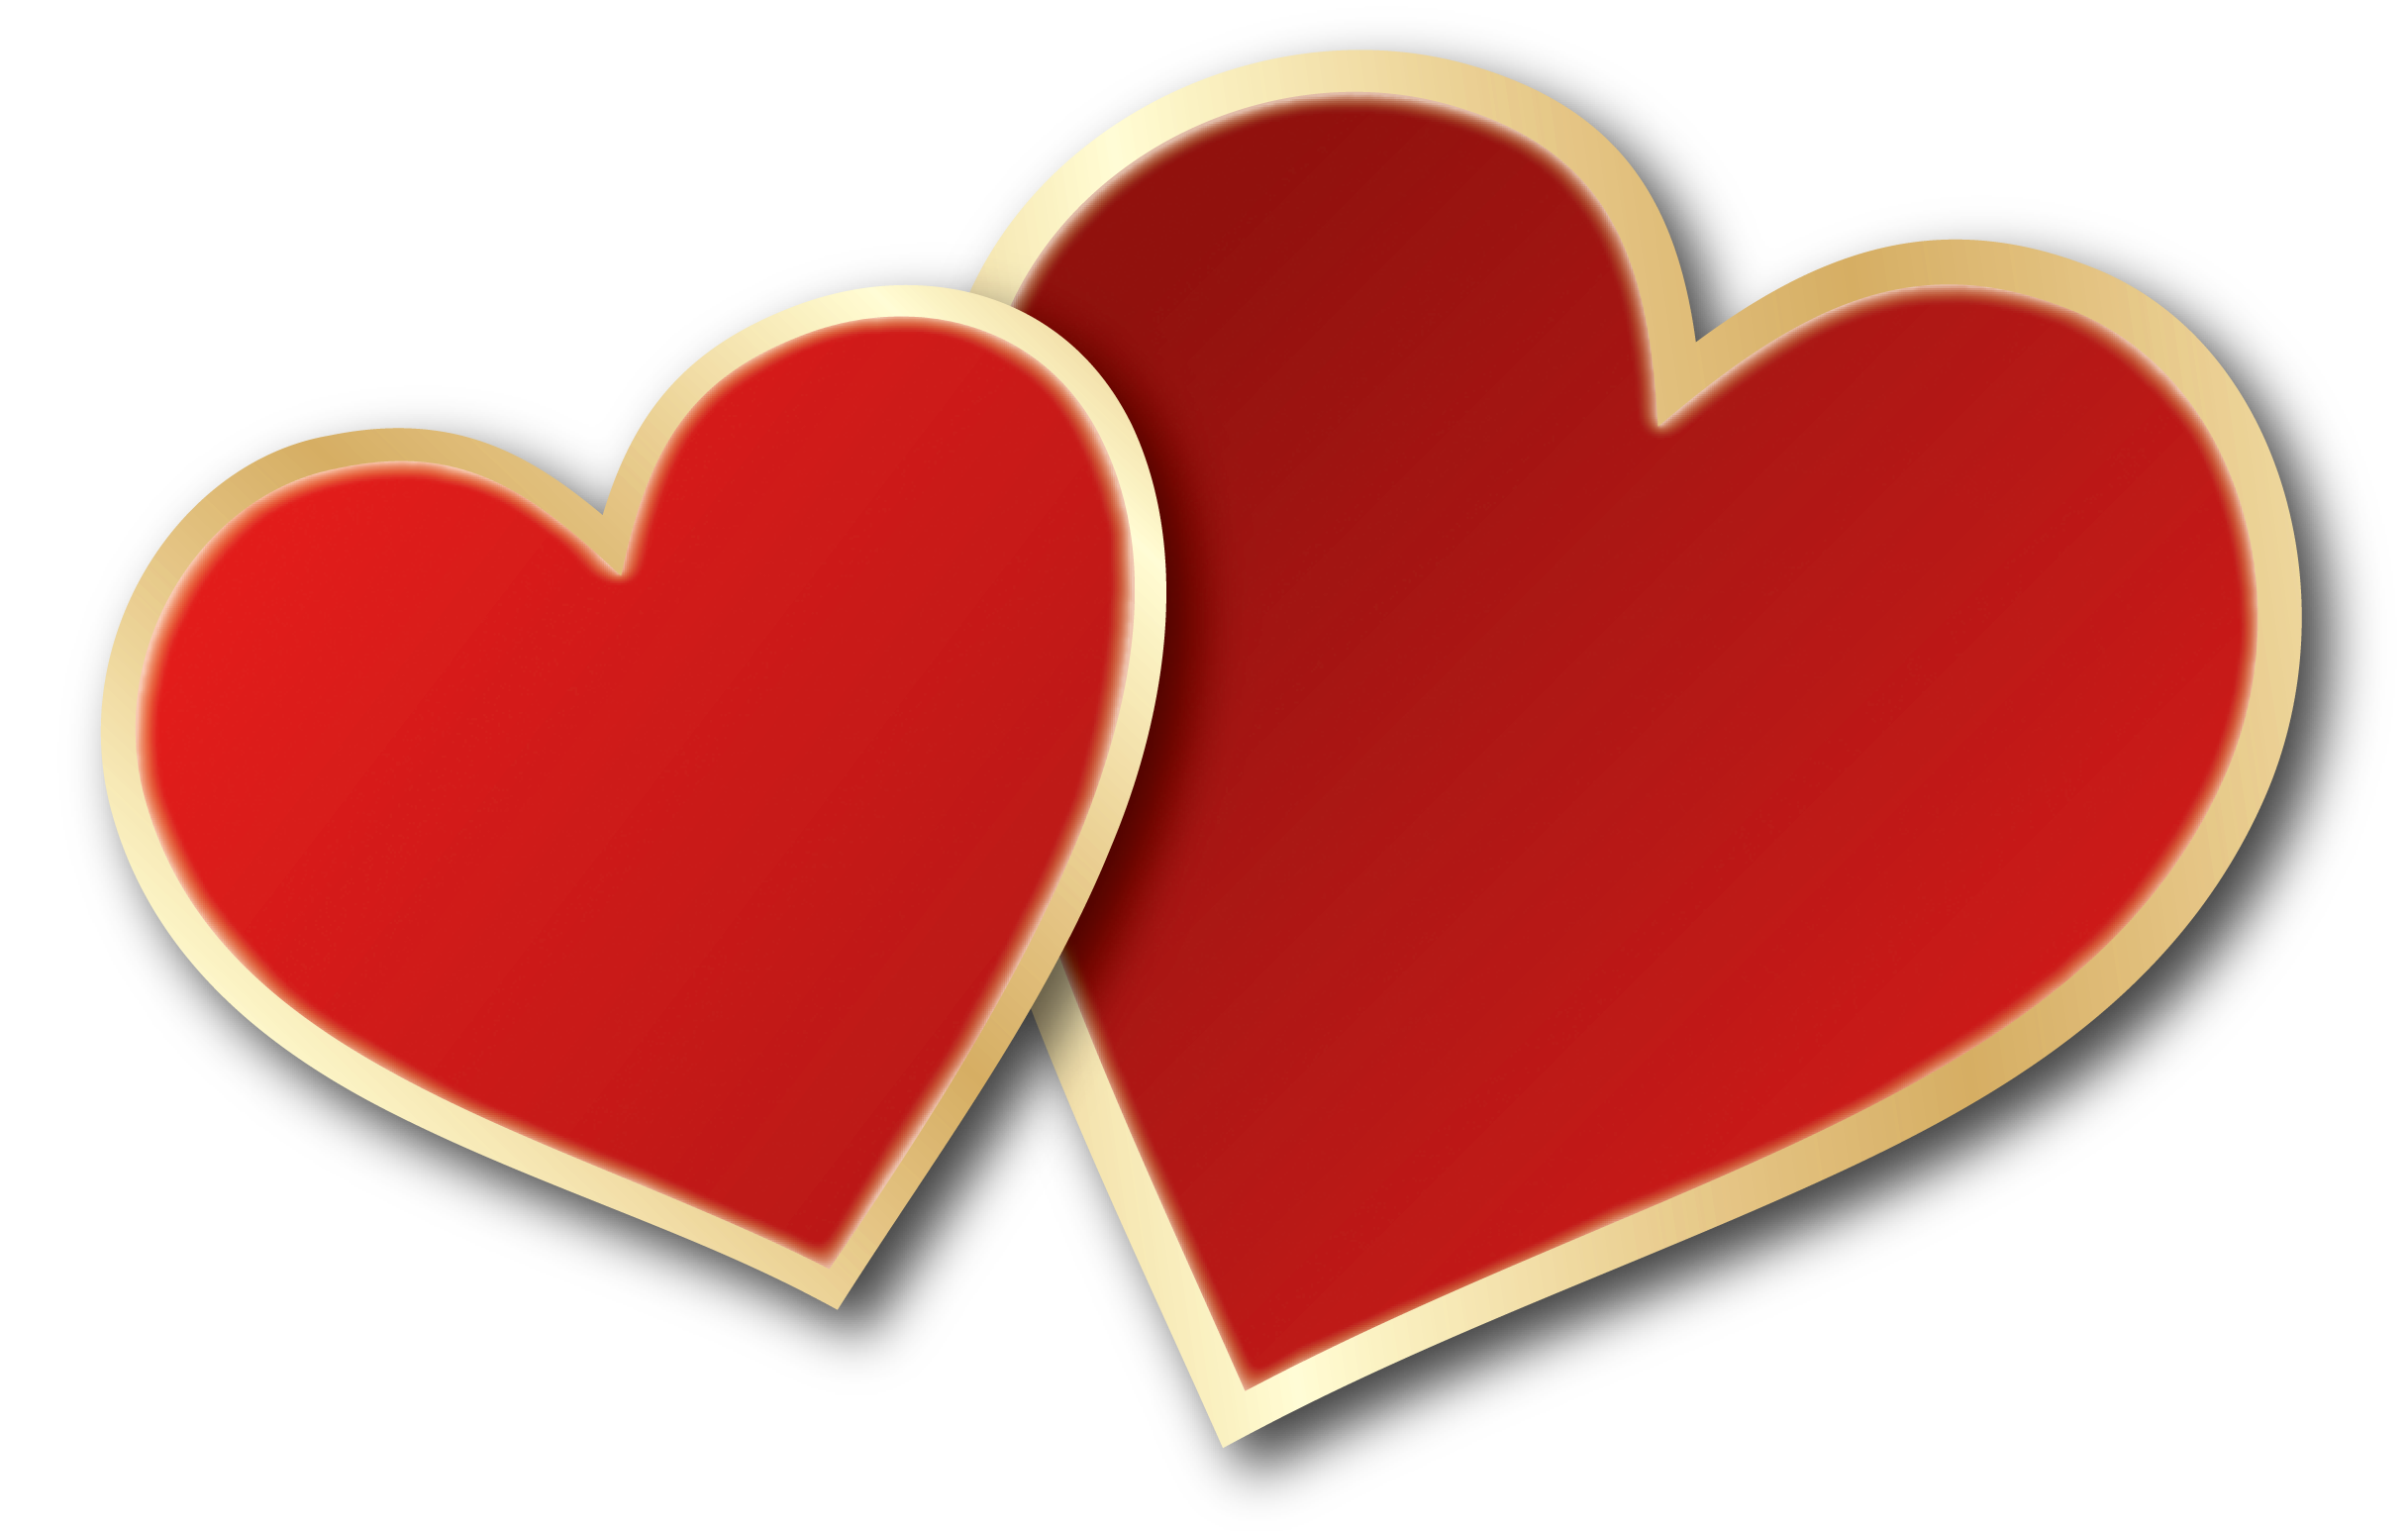 Day image with transparent. Valentines heart png clip art freeuse library